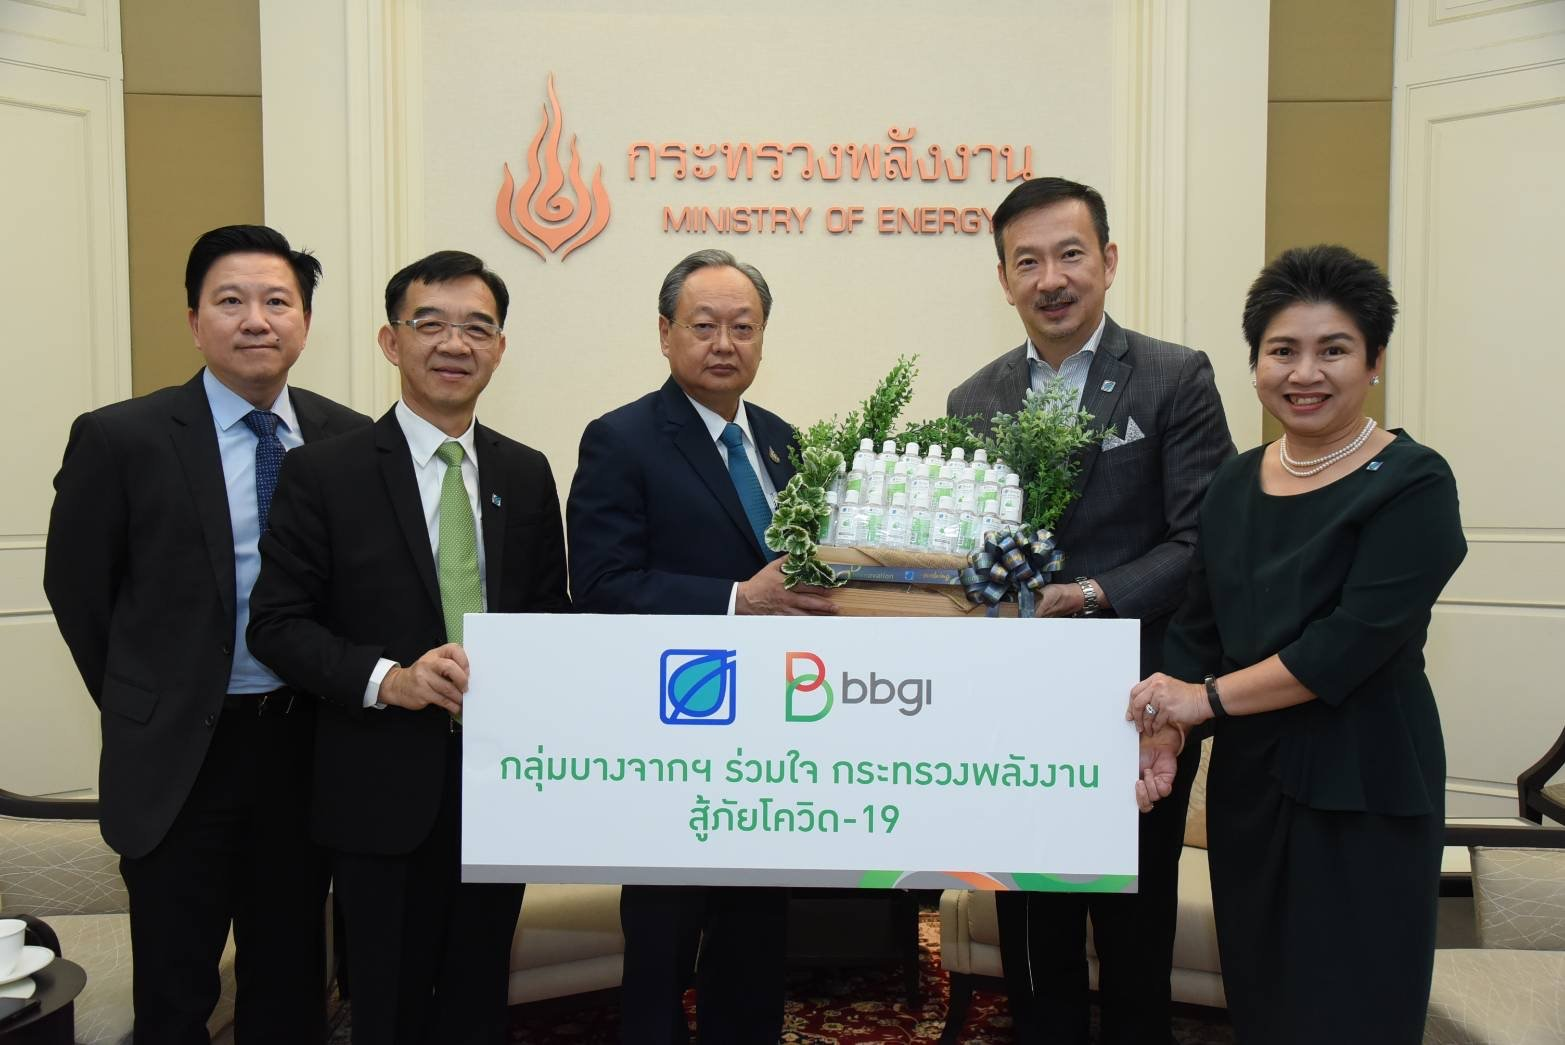 Bangchak Group Supports Energy Ministry's Fight against COVID-19, Gives 30,000 Tubes of Hand Sanitizer Made of BBGI's Alcohol & Glycerin, Implements Measures to Ease Disease's Impacts